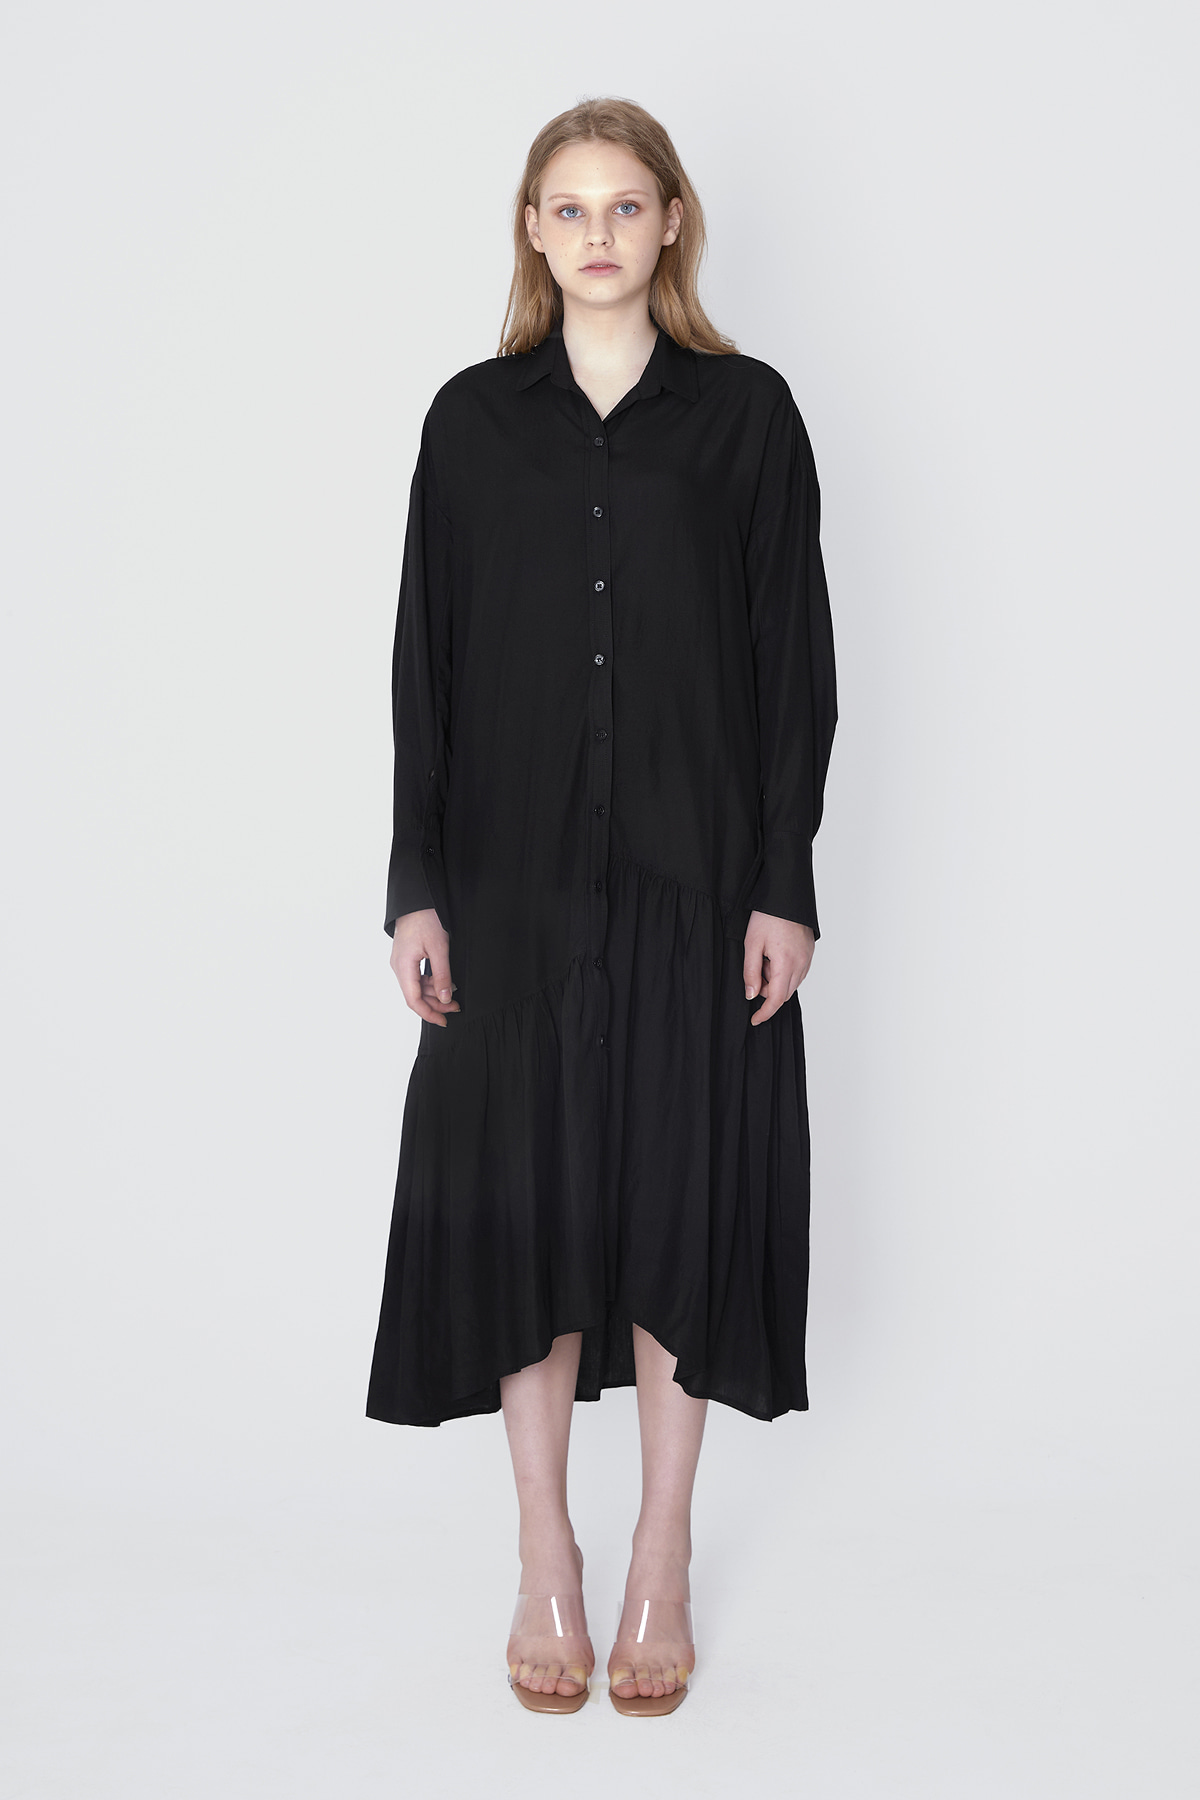 POOCION Flare Line Dress (Black)